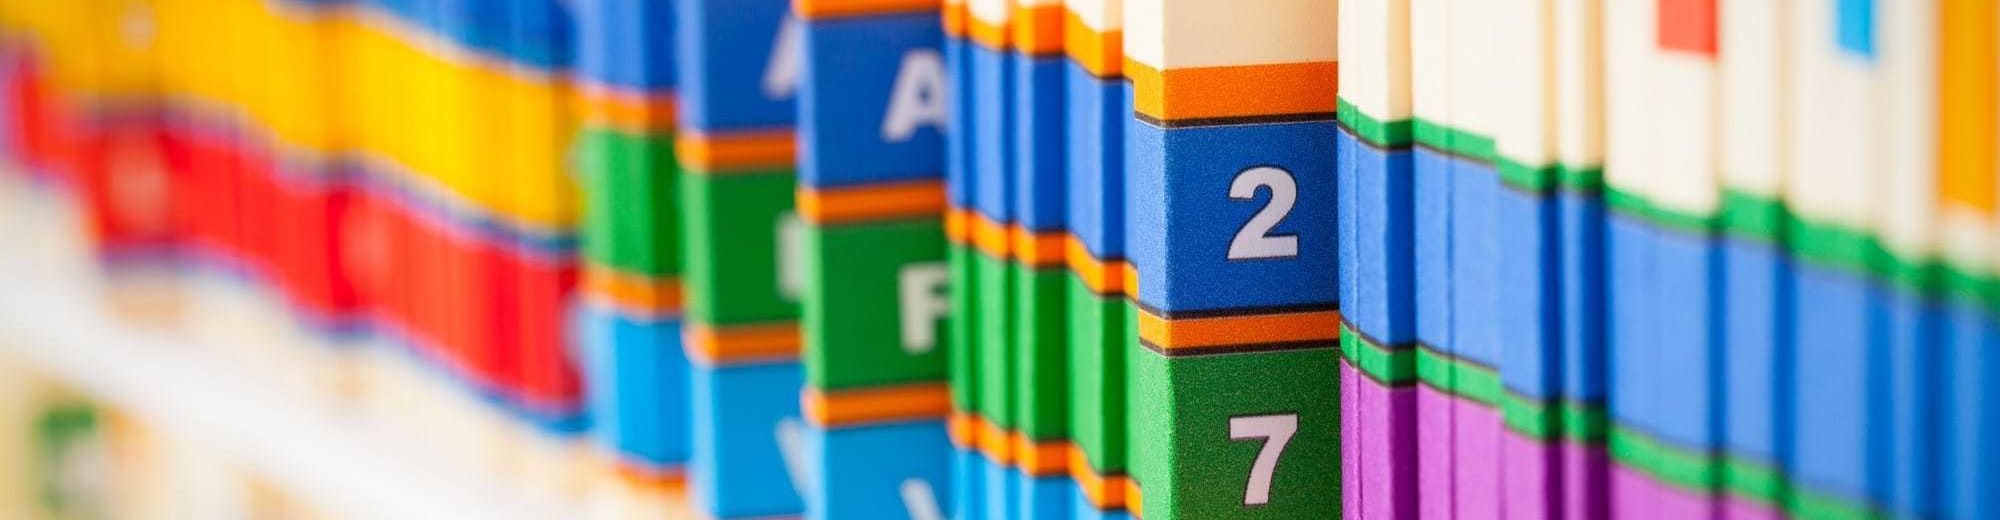 Office Shelf with Medical Files - Data Management Services | Amarex